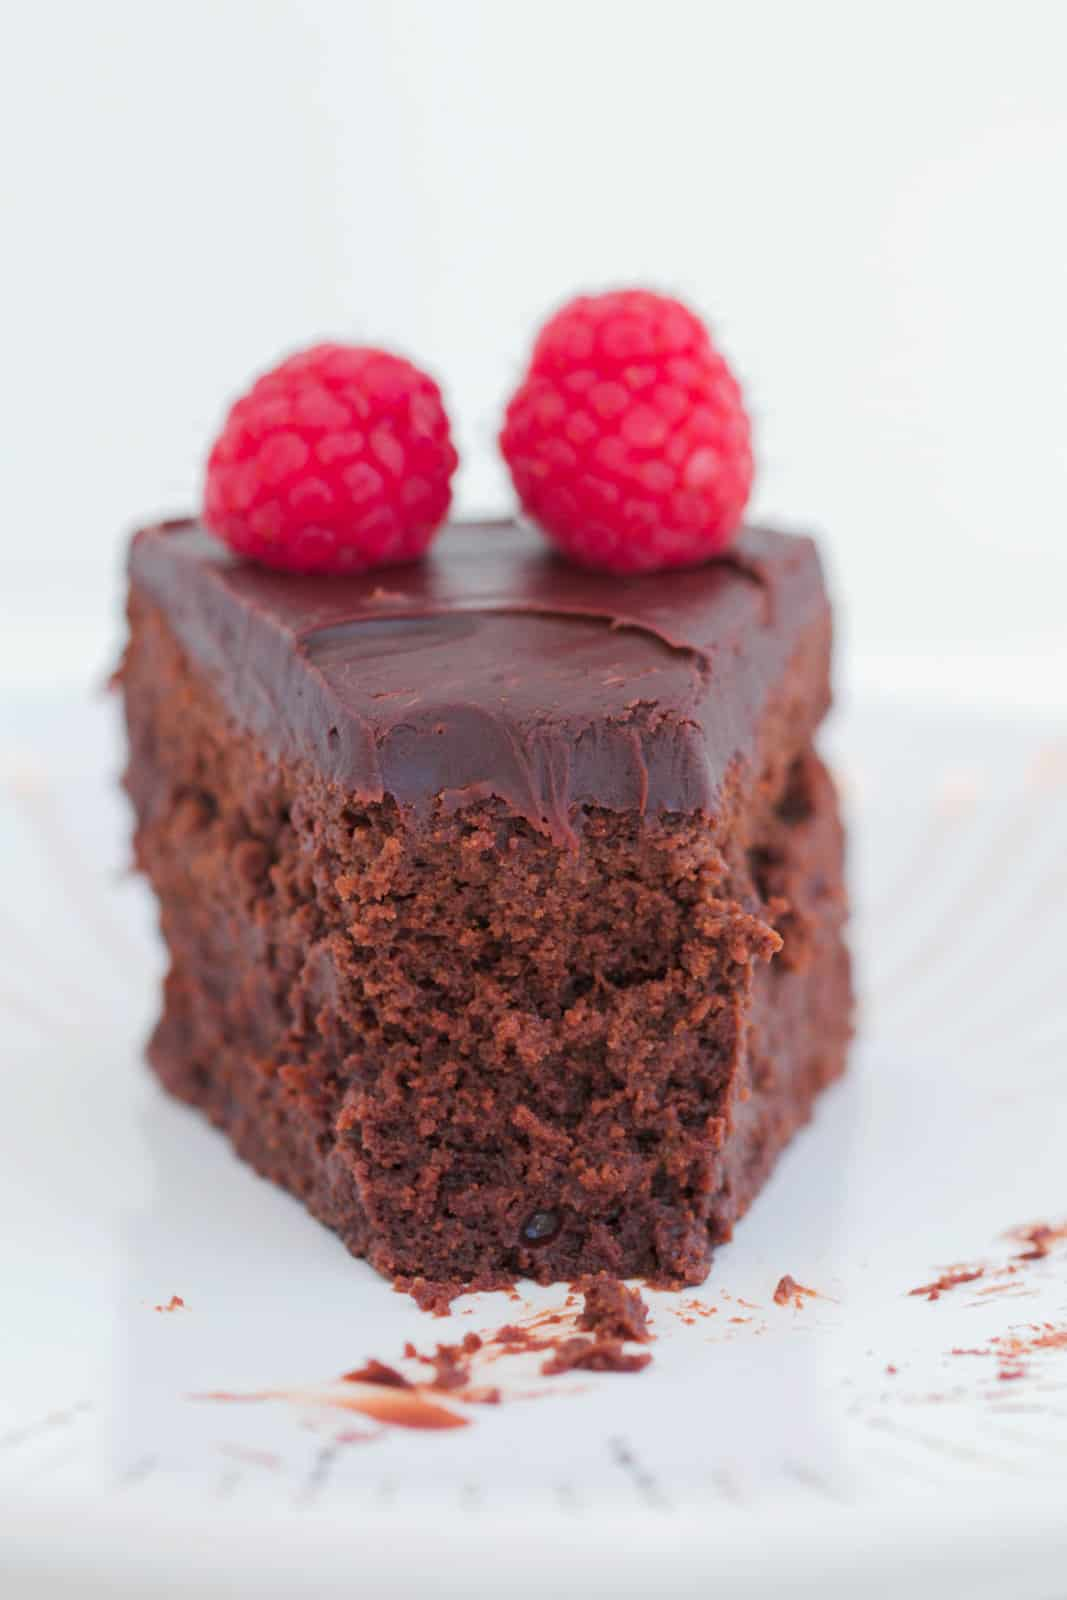 A slice of rich chocolate dessert with a fork mark in it topped with chocolate ganache and fresh raspberries.